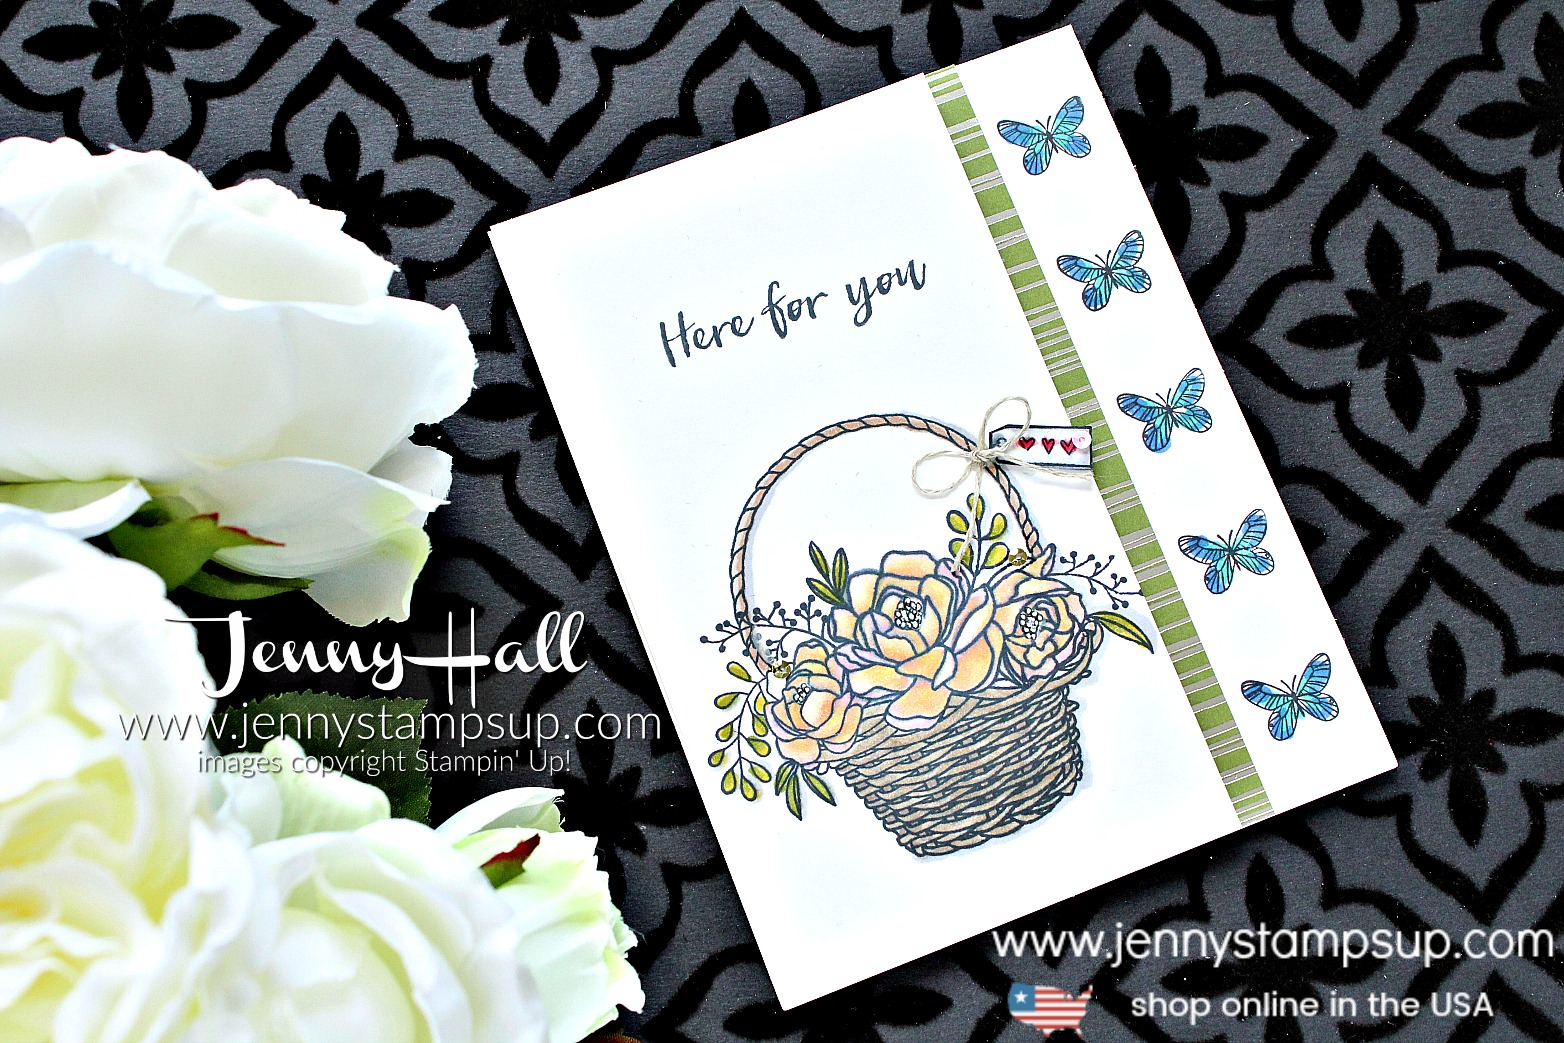 Blossoming Basket with the Stamparatus card created by Jenny Hall at www.jennystampsup.com for #cardmaking #stamparatus #stampinblends #stampinup #stamping #videotutorial #jennyhall #jennyhalldesign #jennyhallstampinup #jennystampsup #crafts #lifestyle #coloring cardmakingvideo #youtuber